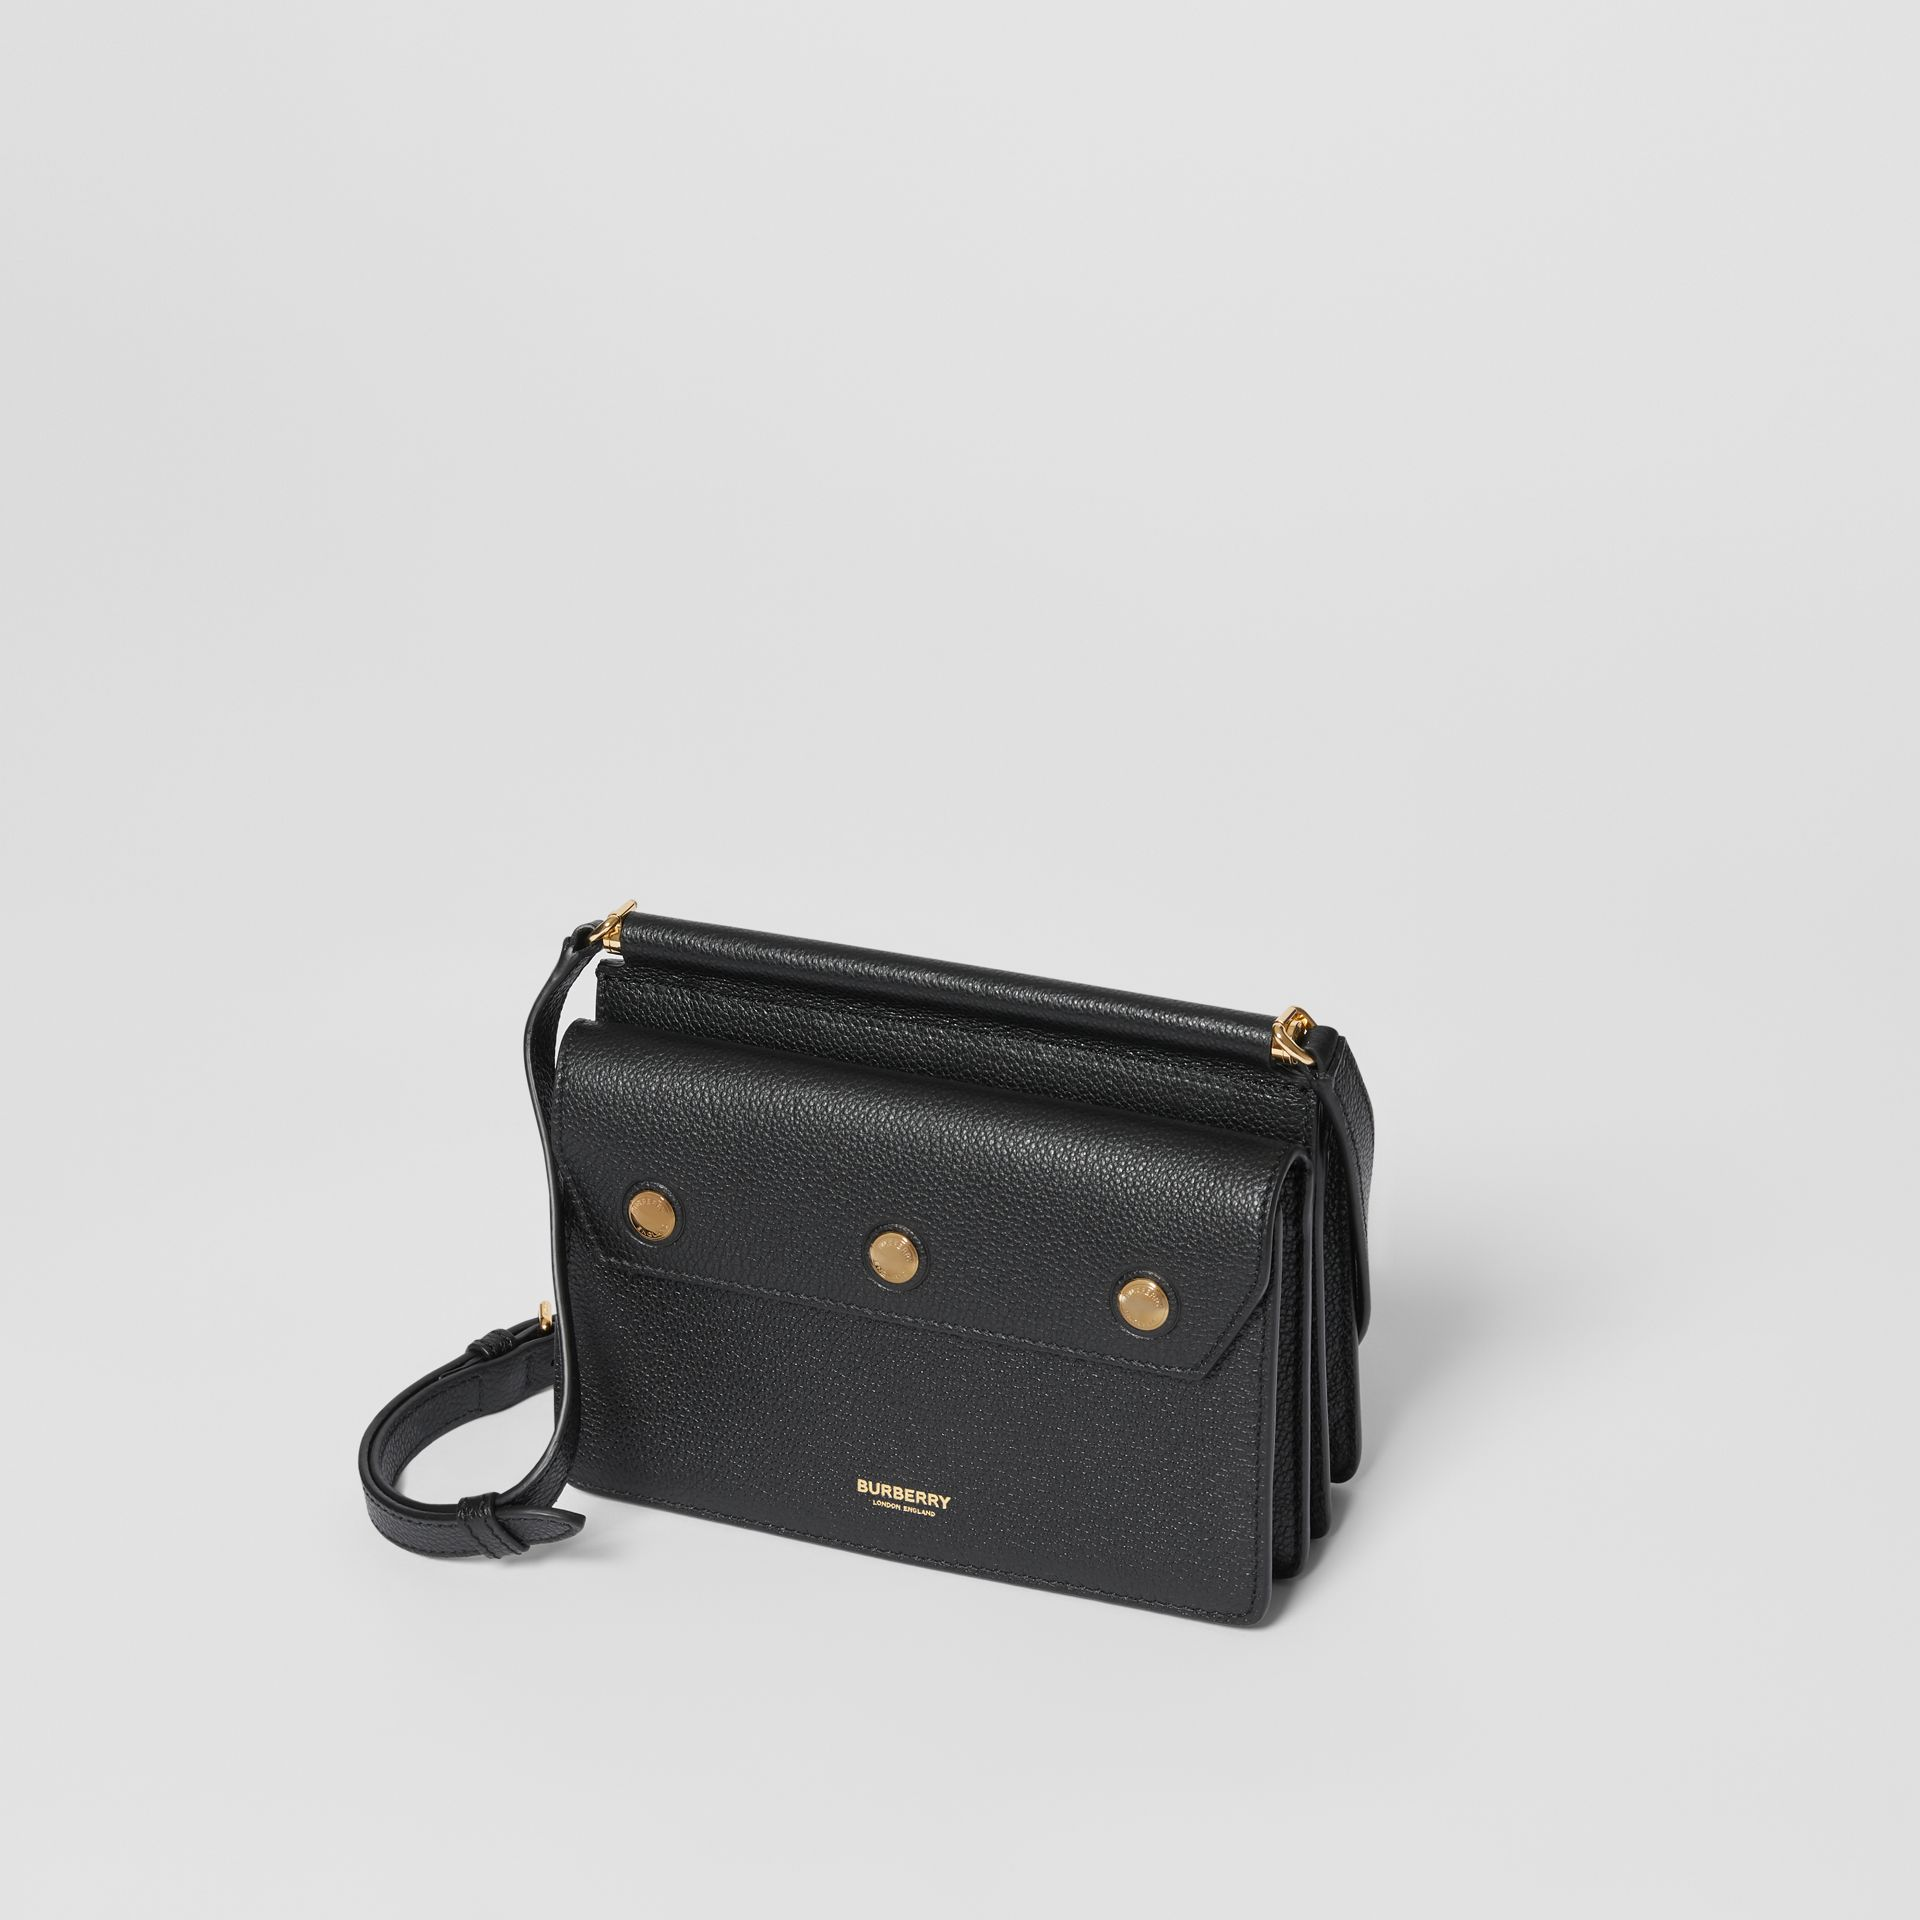 Mini Leather Title Bag with Pocket Detail in Black - Women | Burberry - gallery image 3